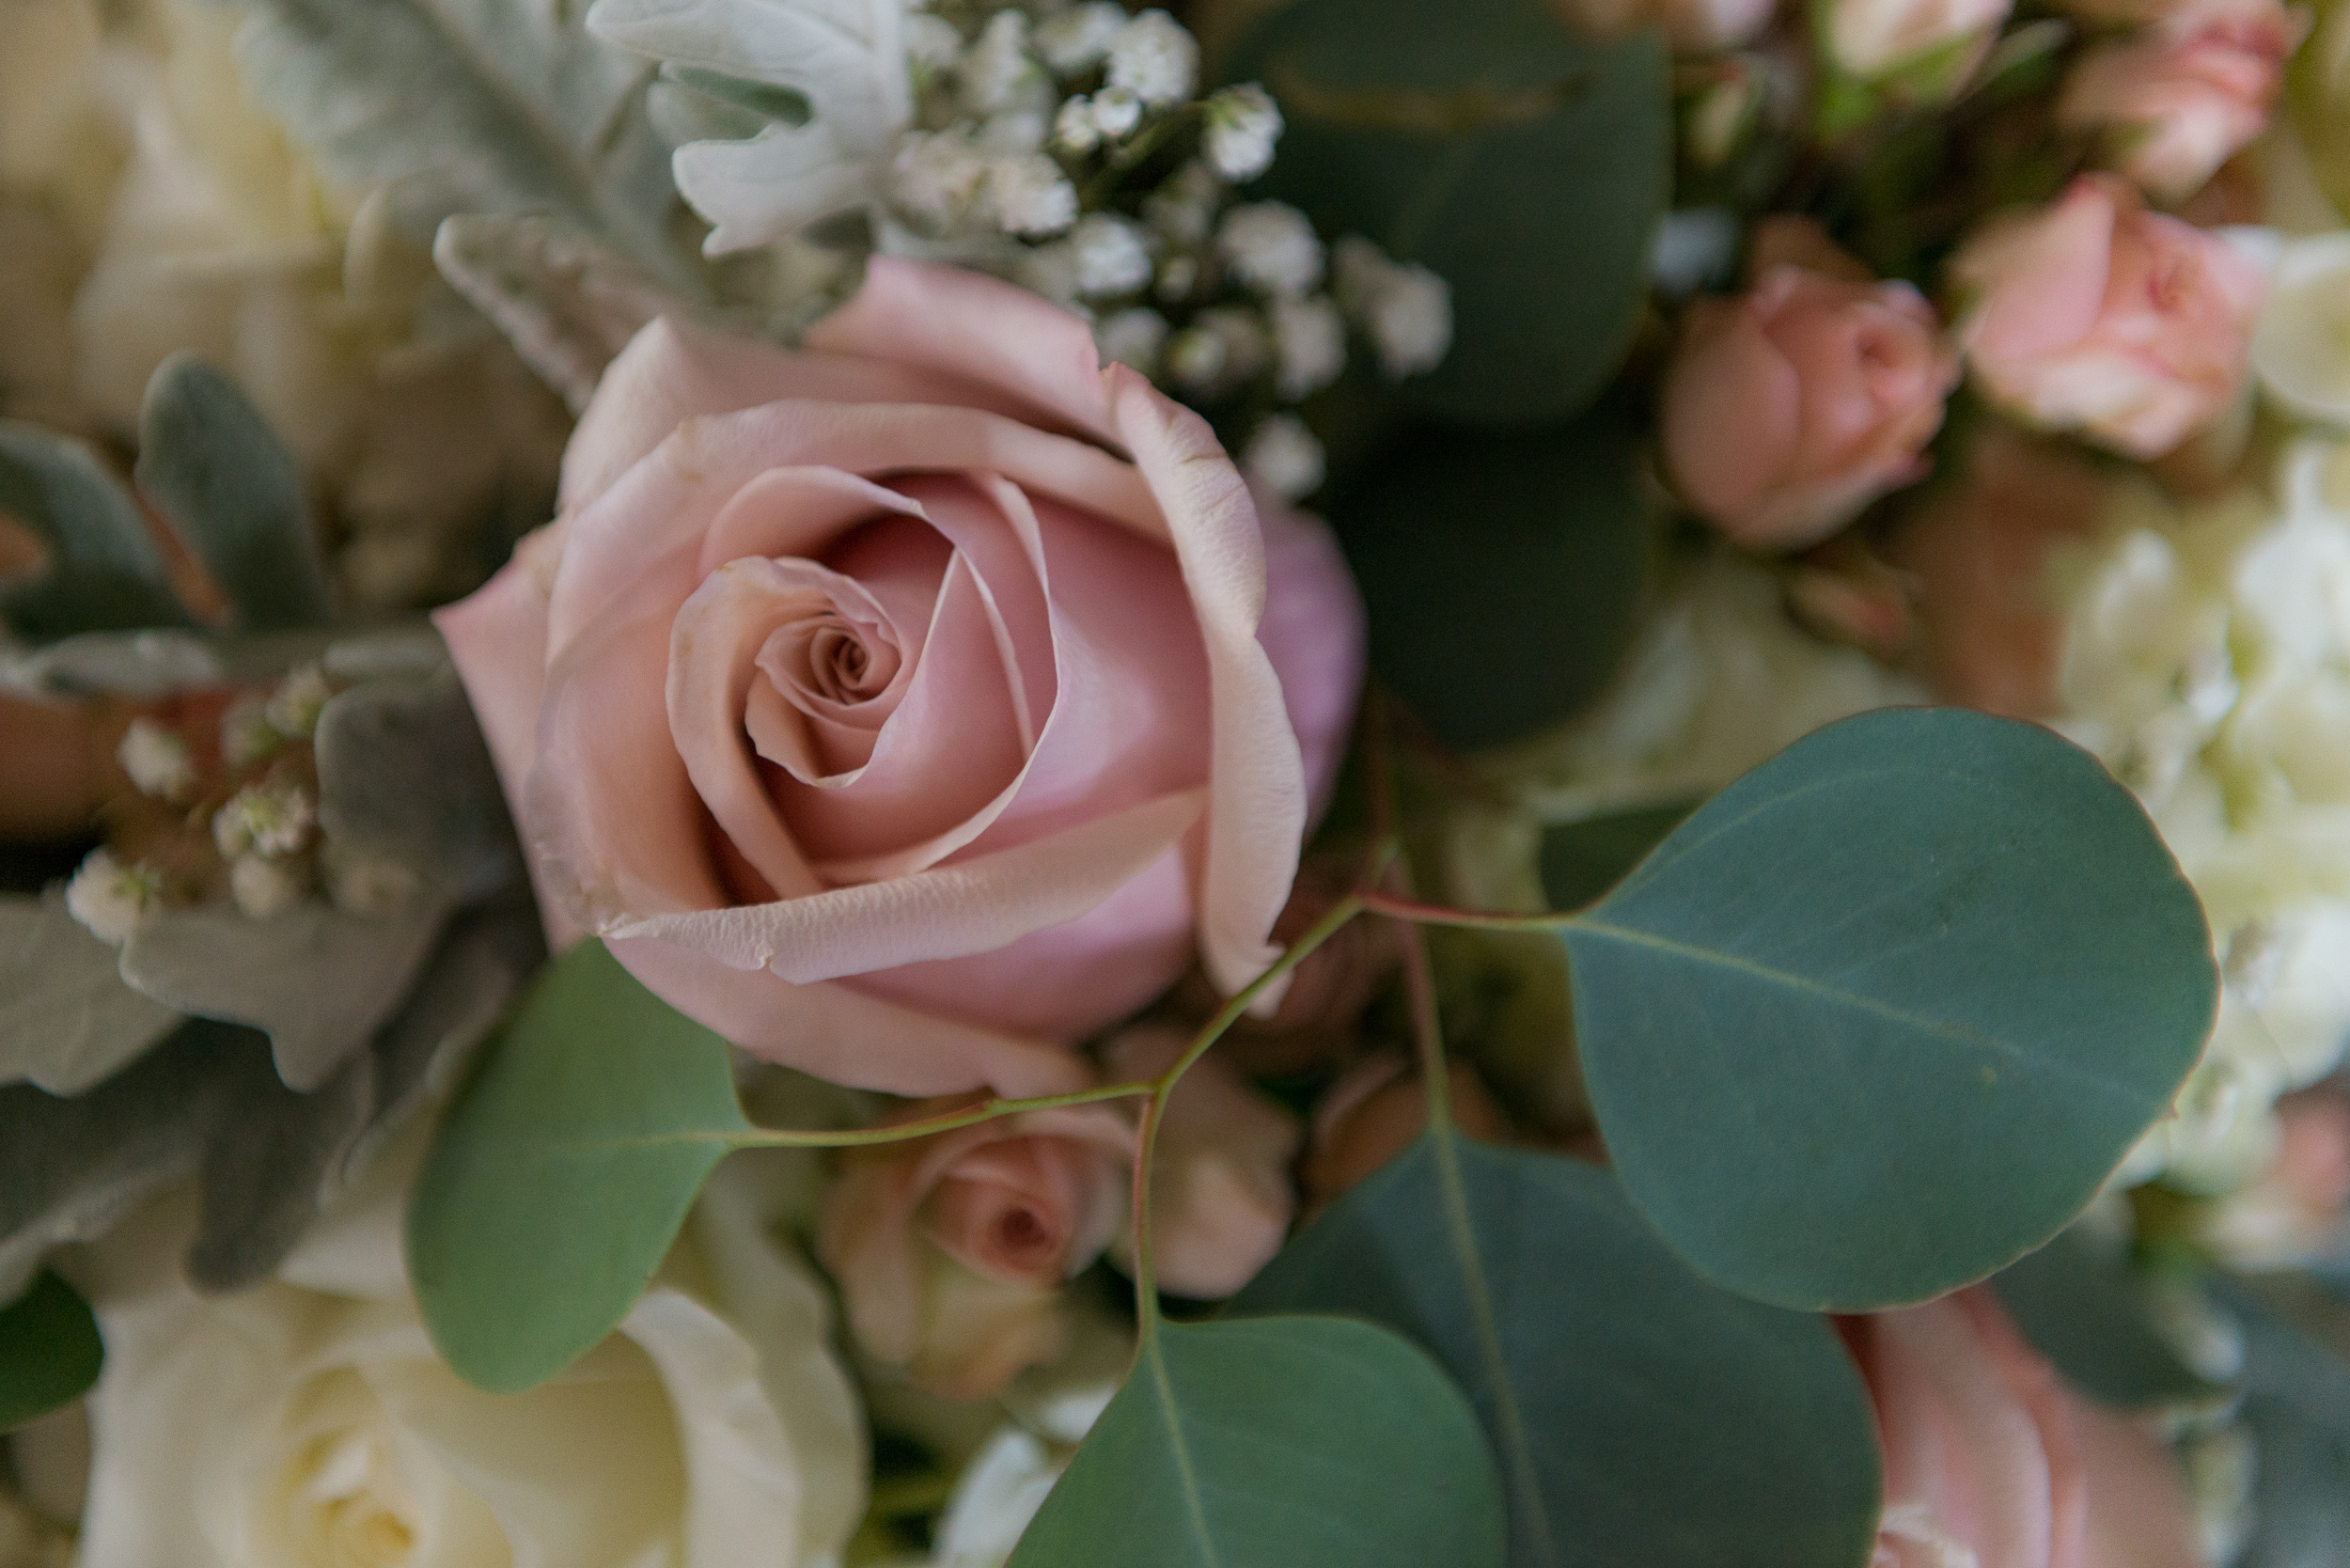 Pastel flowers for a wedding at St. Veronica Catholic Church in Chantilly, Virginia